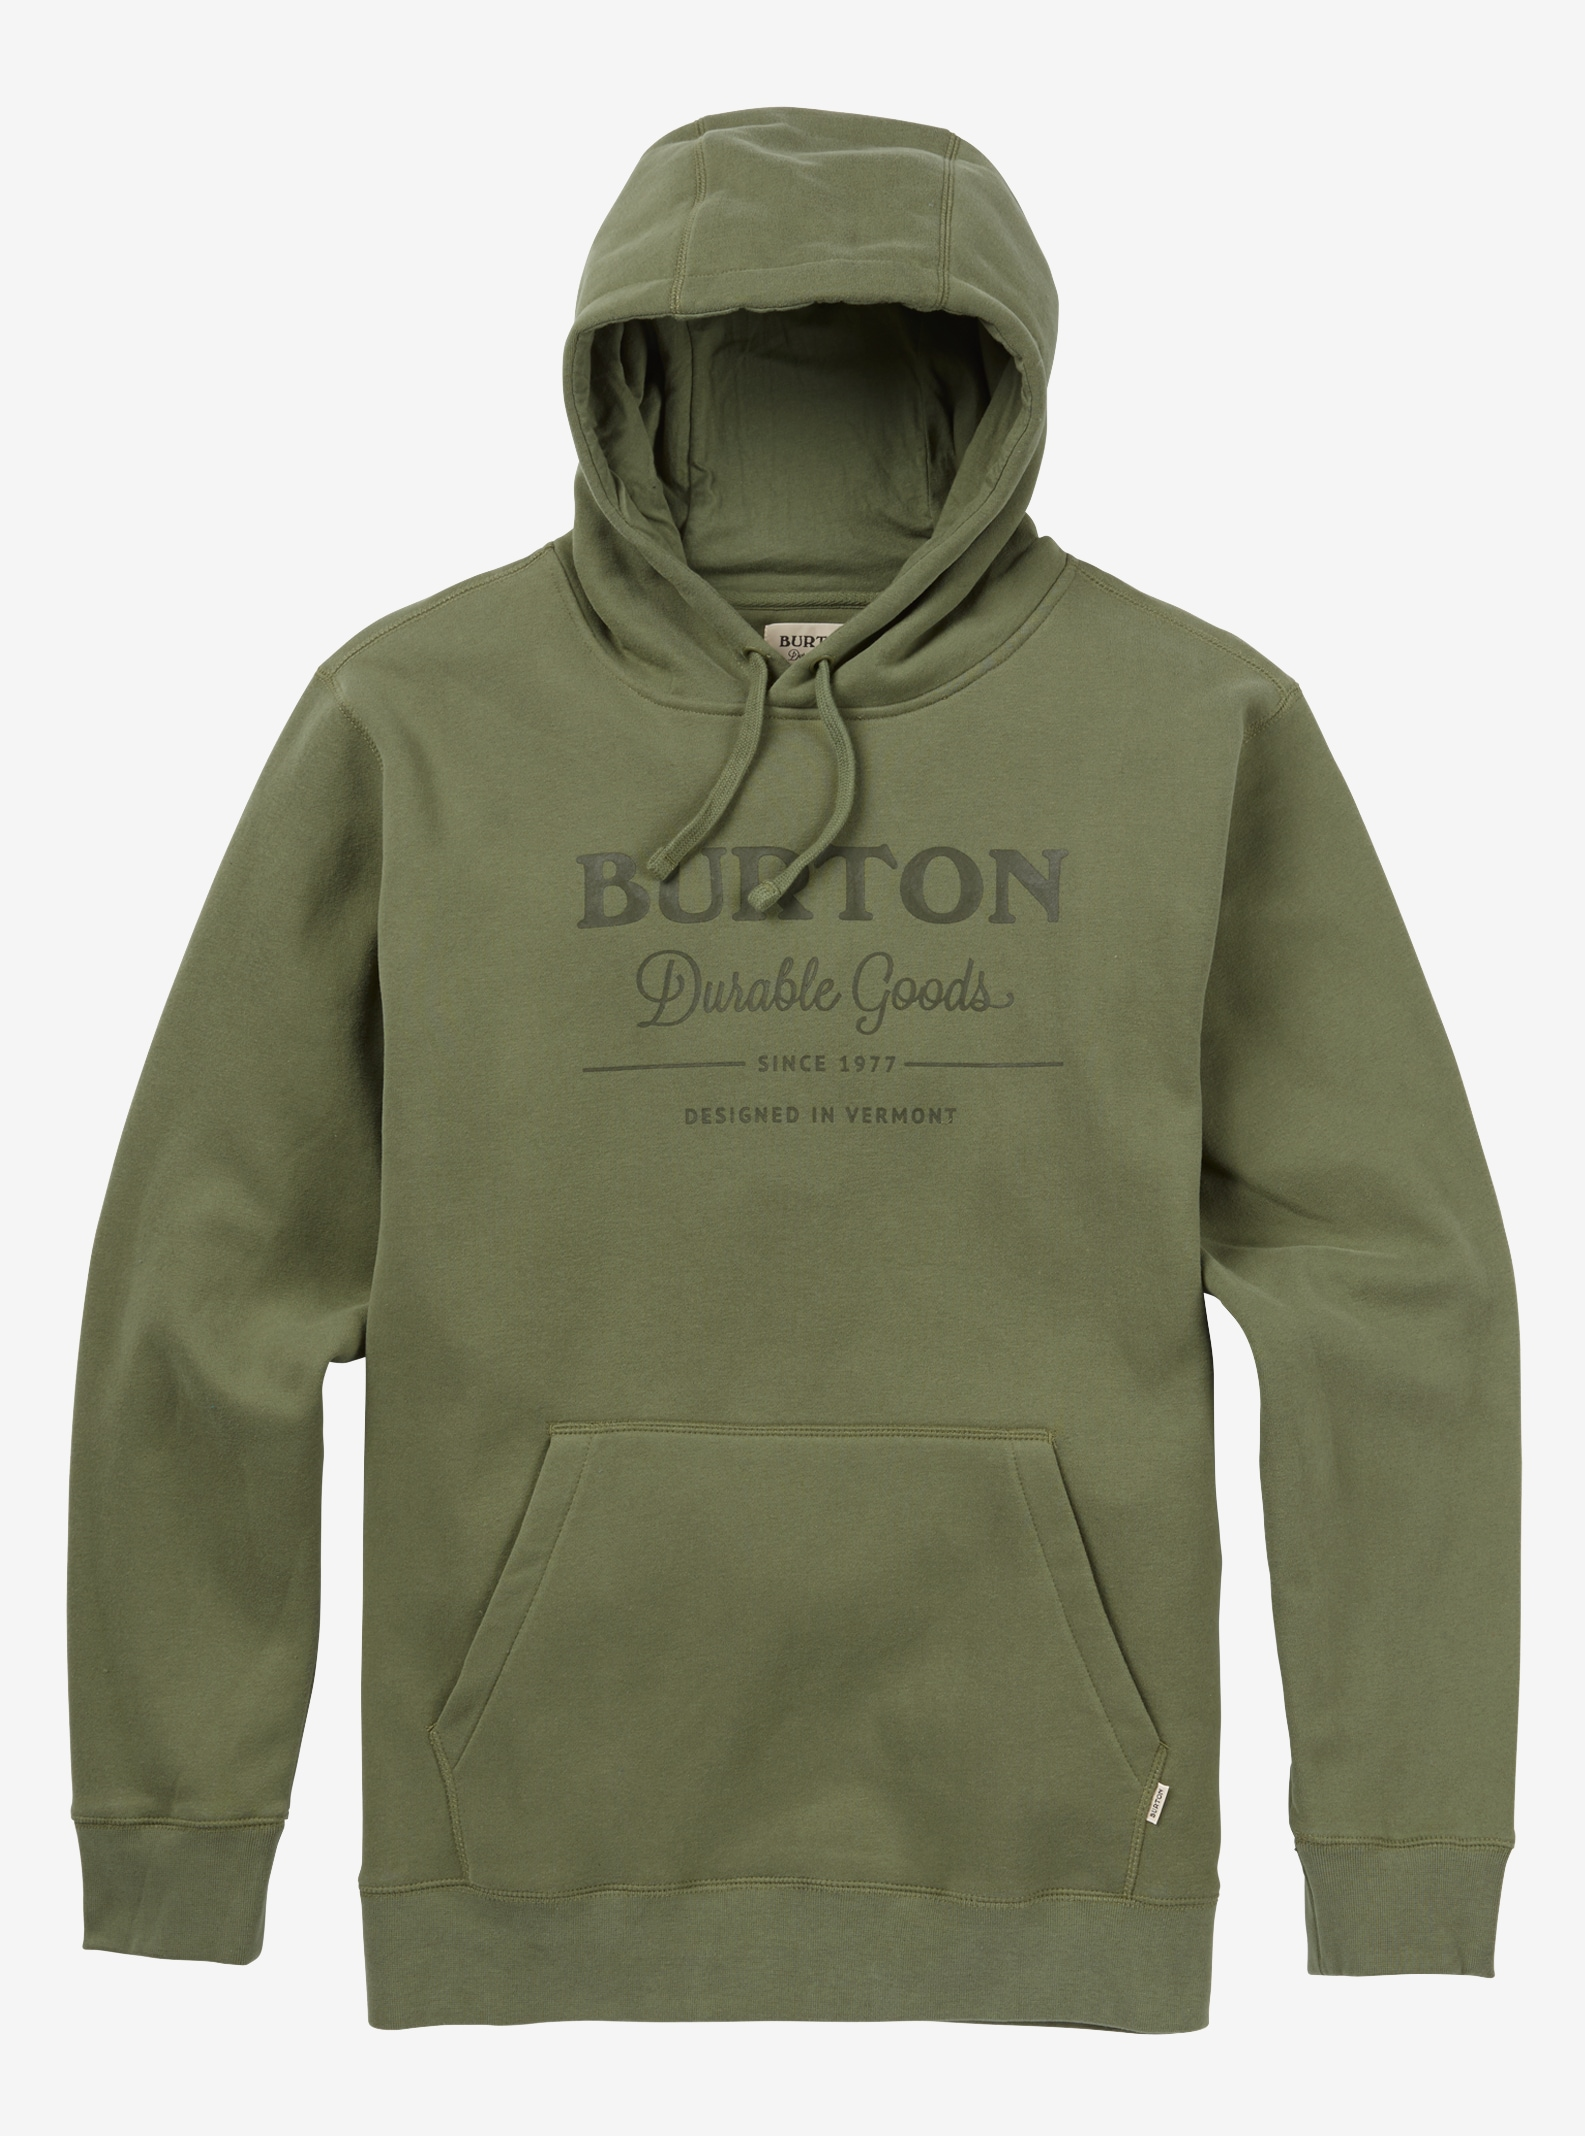 Men's Burton Durable Goods Pullover Hoodie shown in Dusty Olive